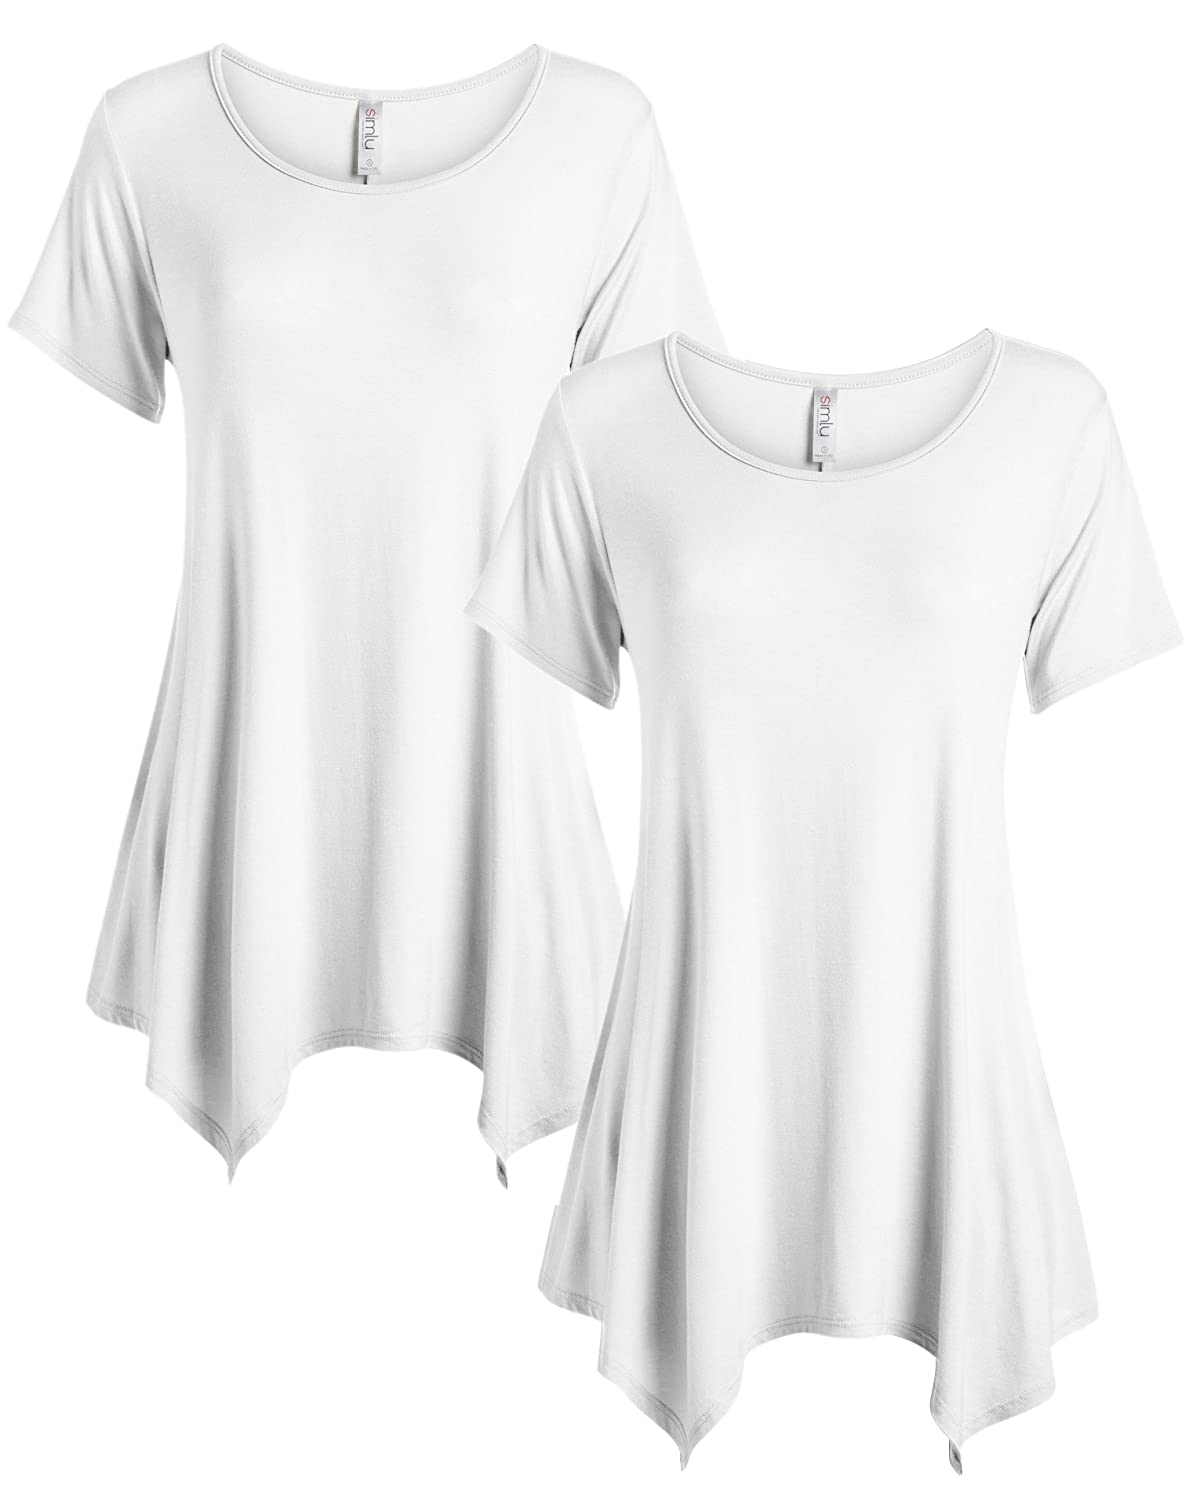 596458af9f1 COMFORT - These loose fit Tunic tops for women is thoughtfully designed  with your personal comfort in mind. The solid Tunics are composed of 95%  rayon ...